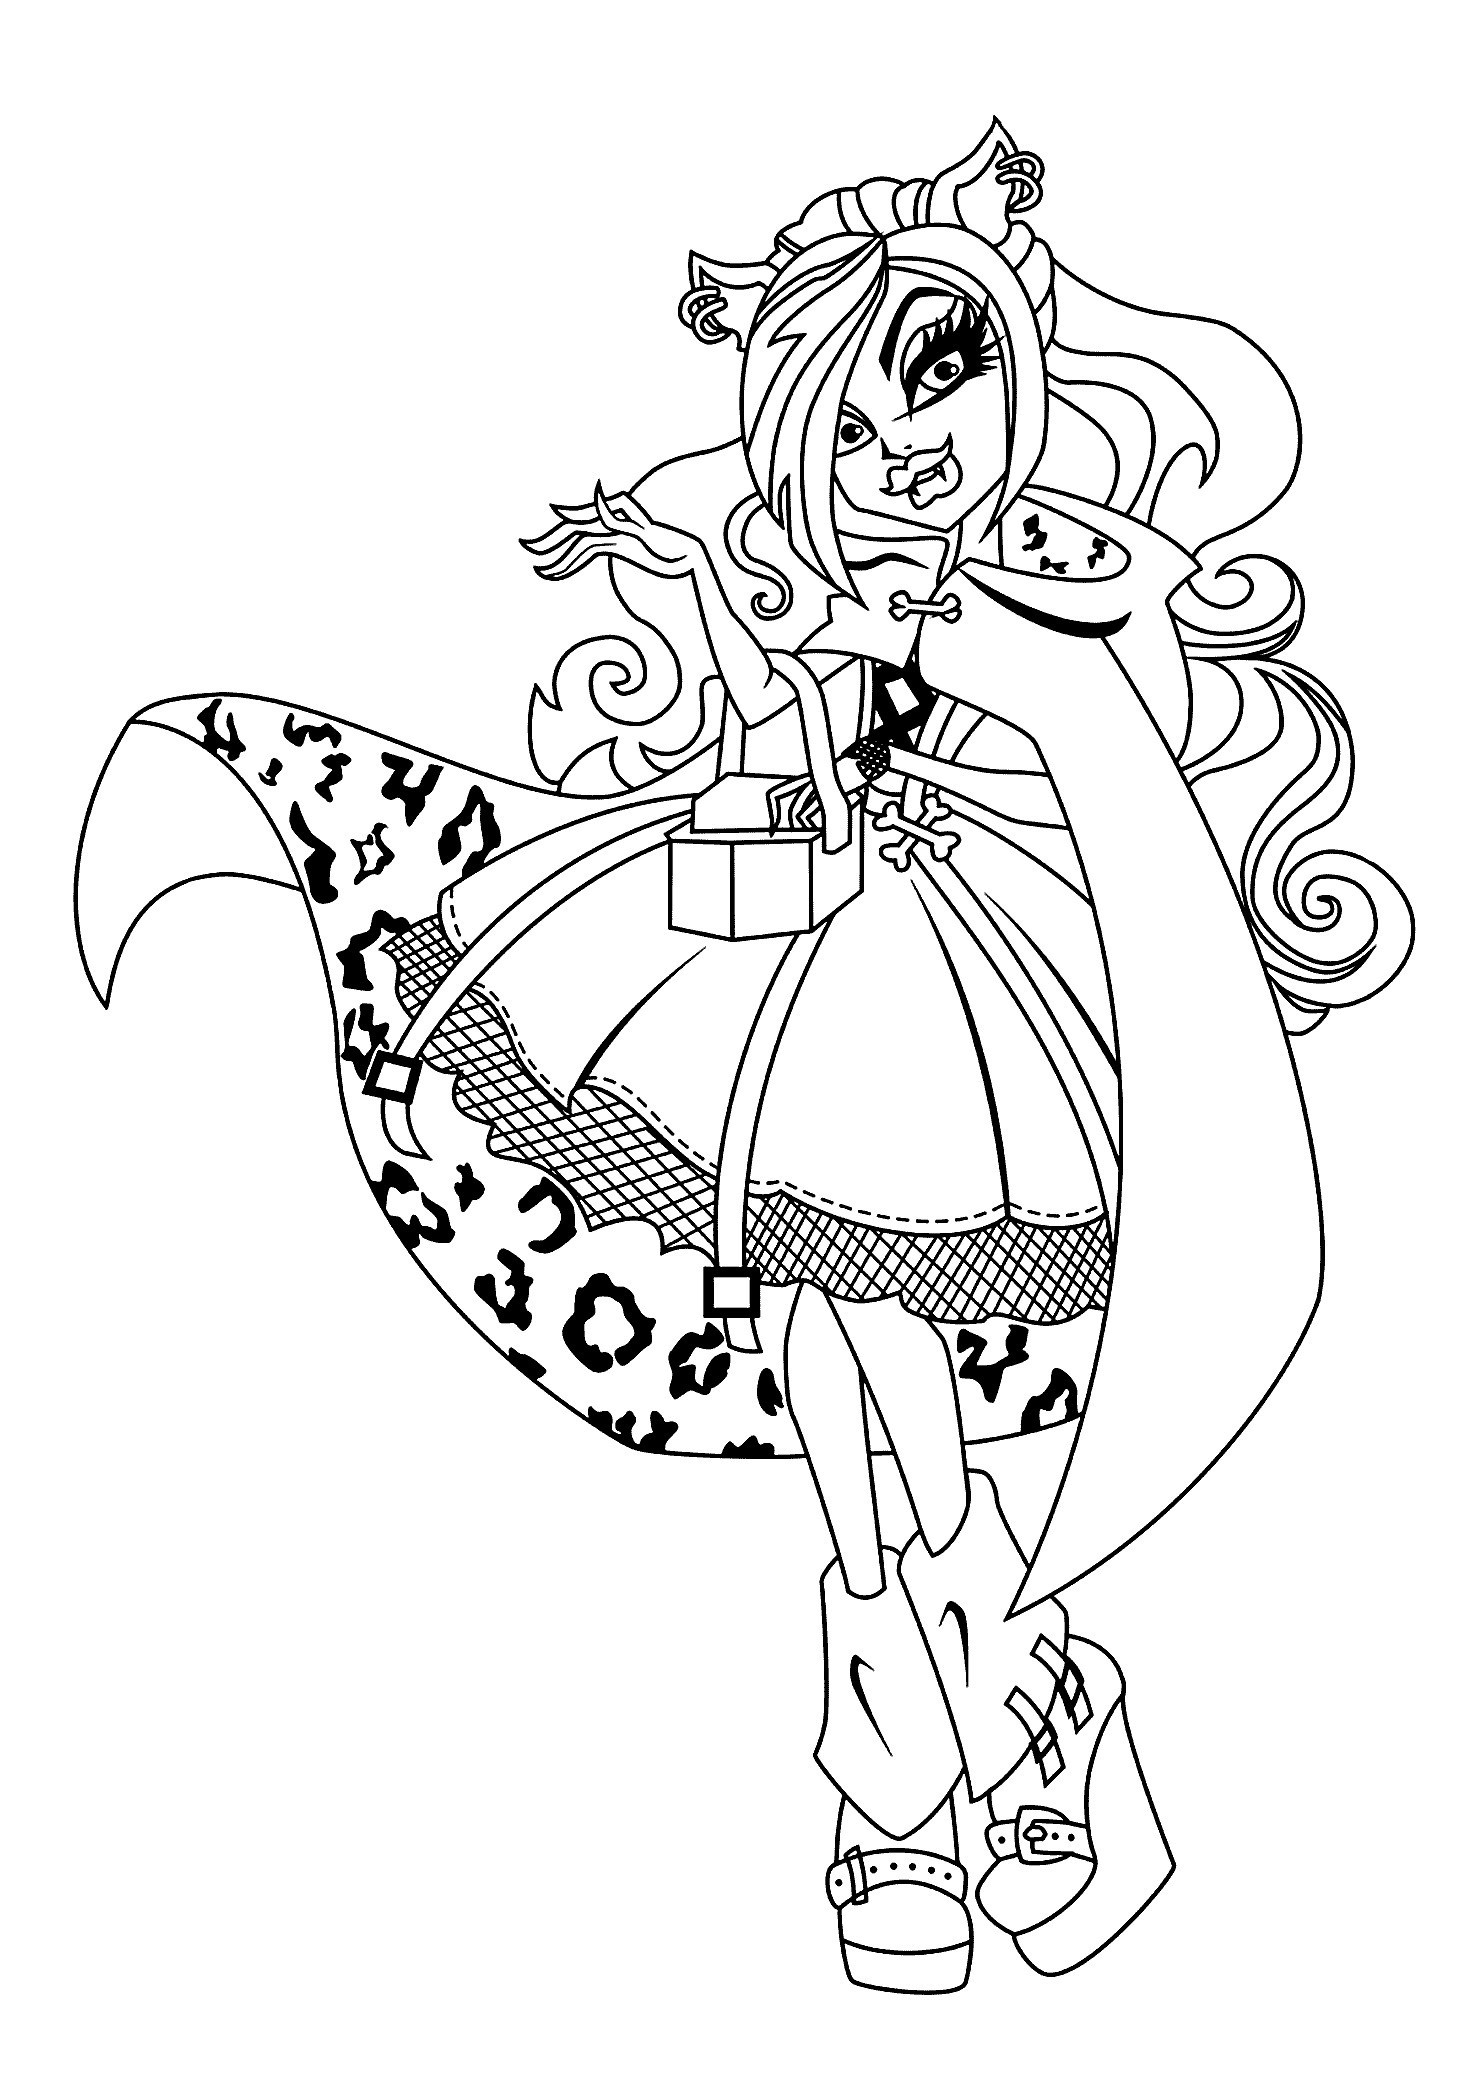 Ausmalbilder Monster High Das Beste Von Ever after High Coloring Pages New 35 Inspirierend Ausmalbilder Das Bild